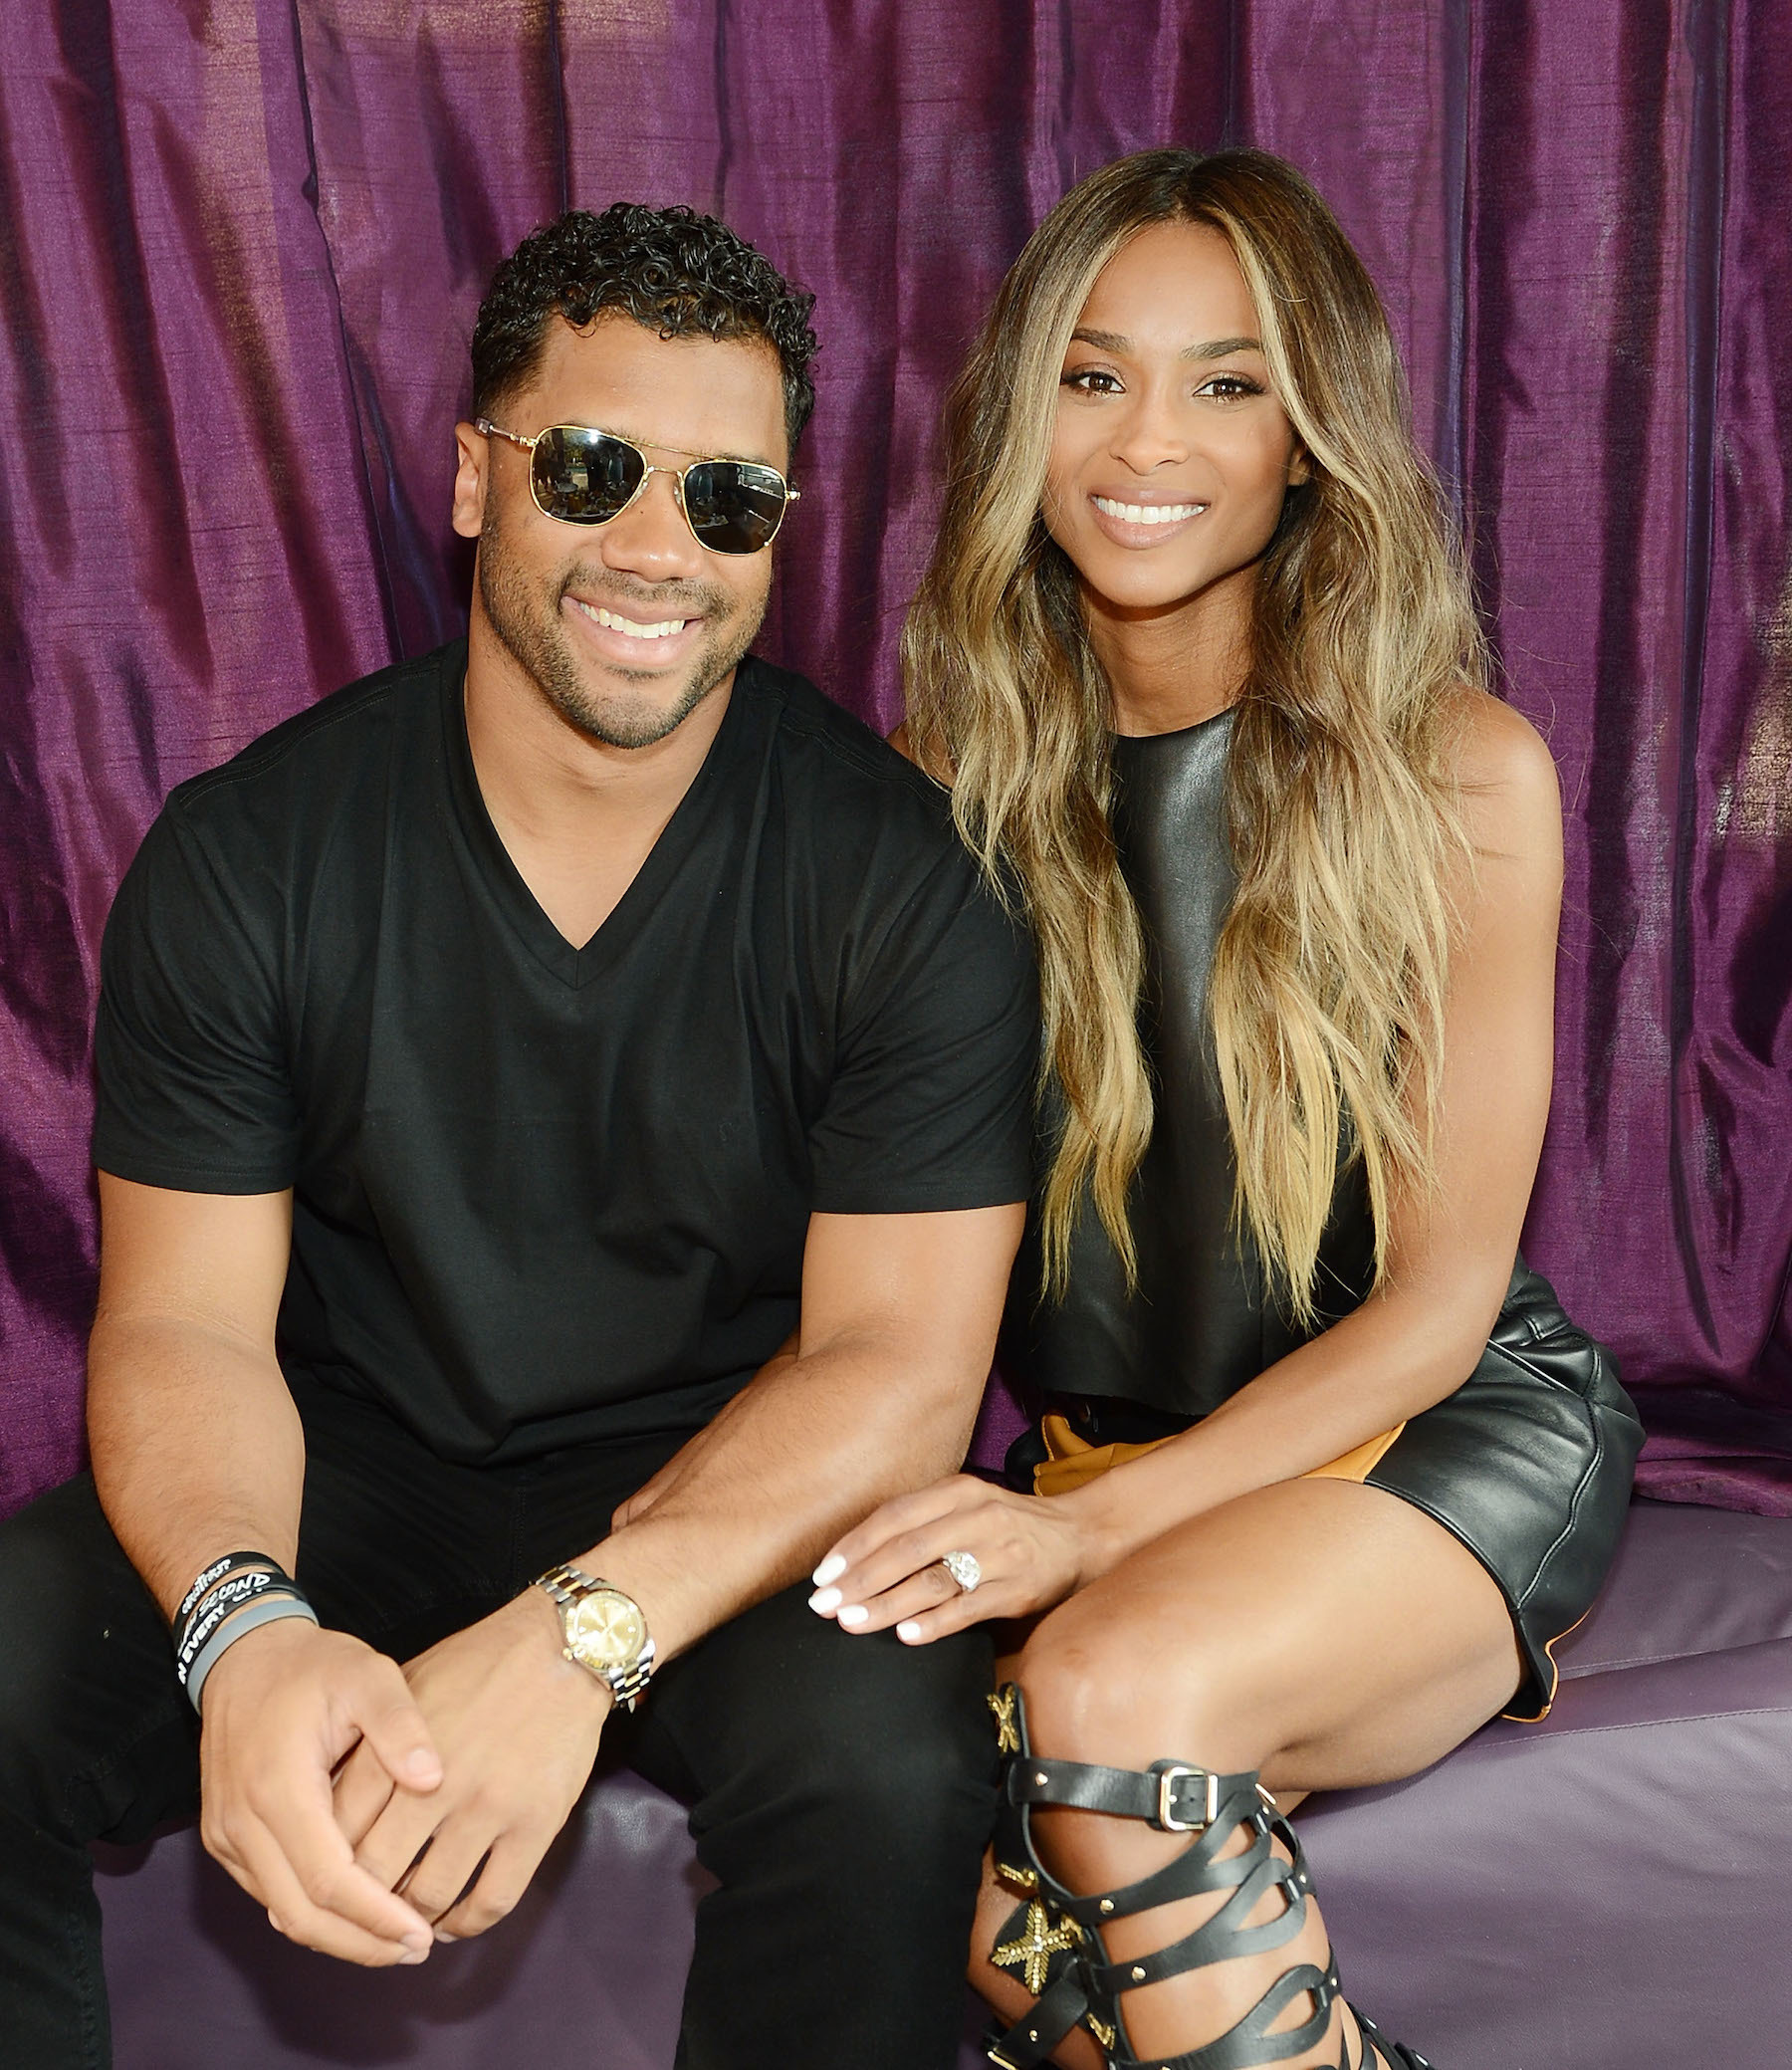 Ciara is out of Russell Wilson's league